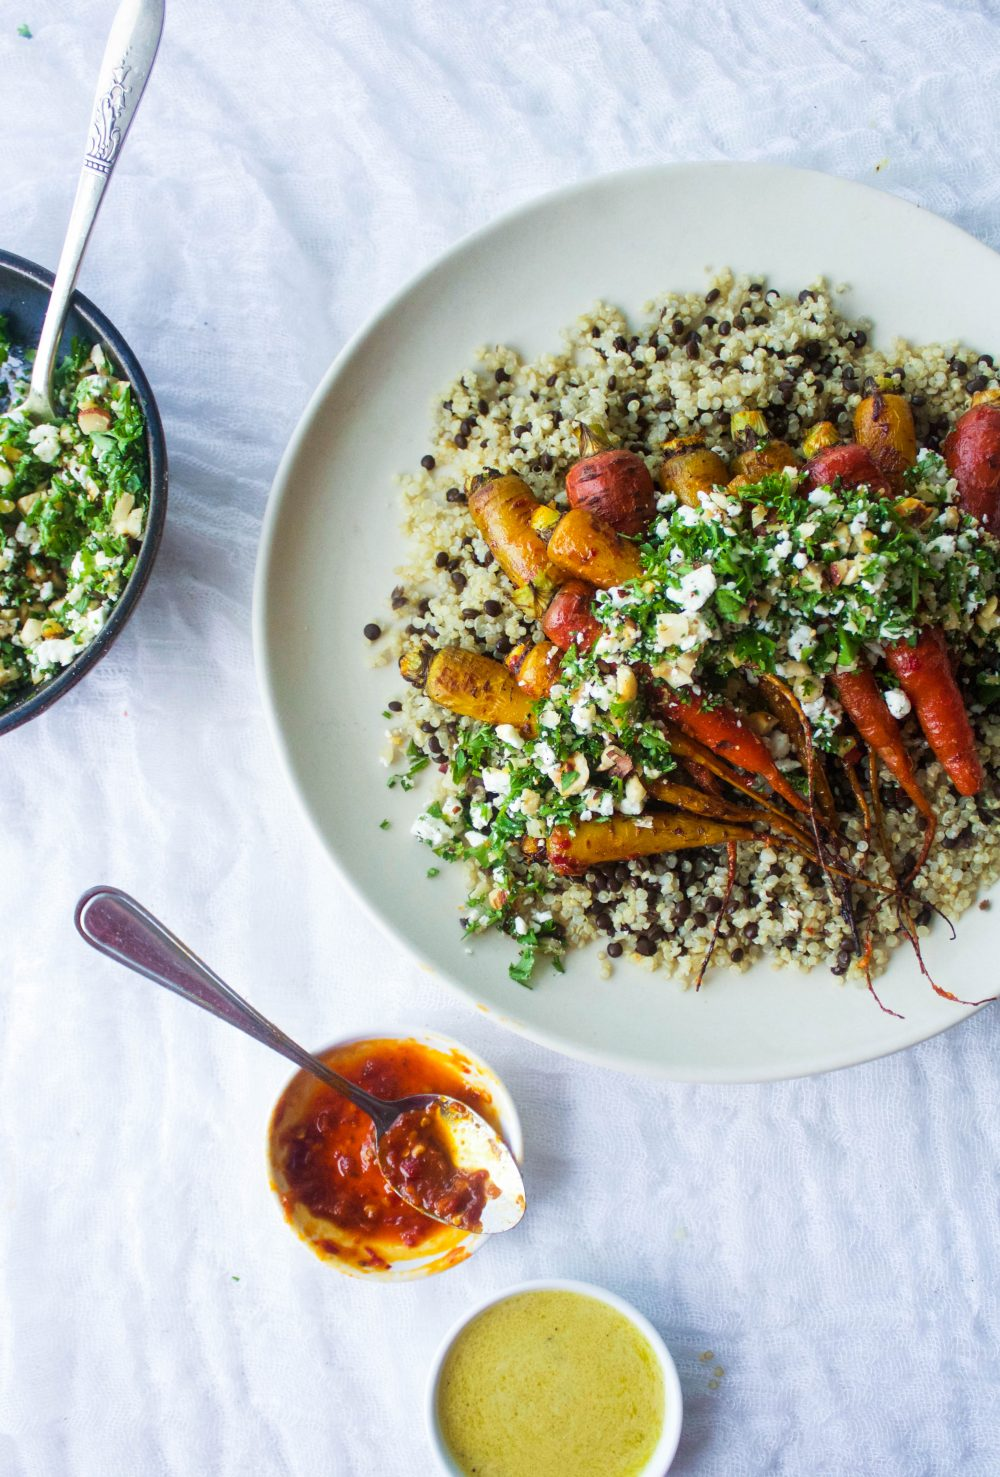 Harissa Roasted Carrots w/ Herbed Feta Crumble